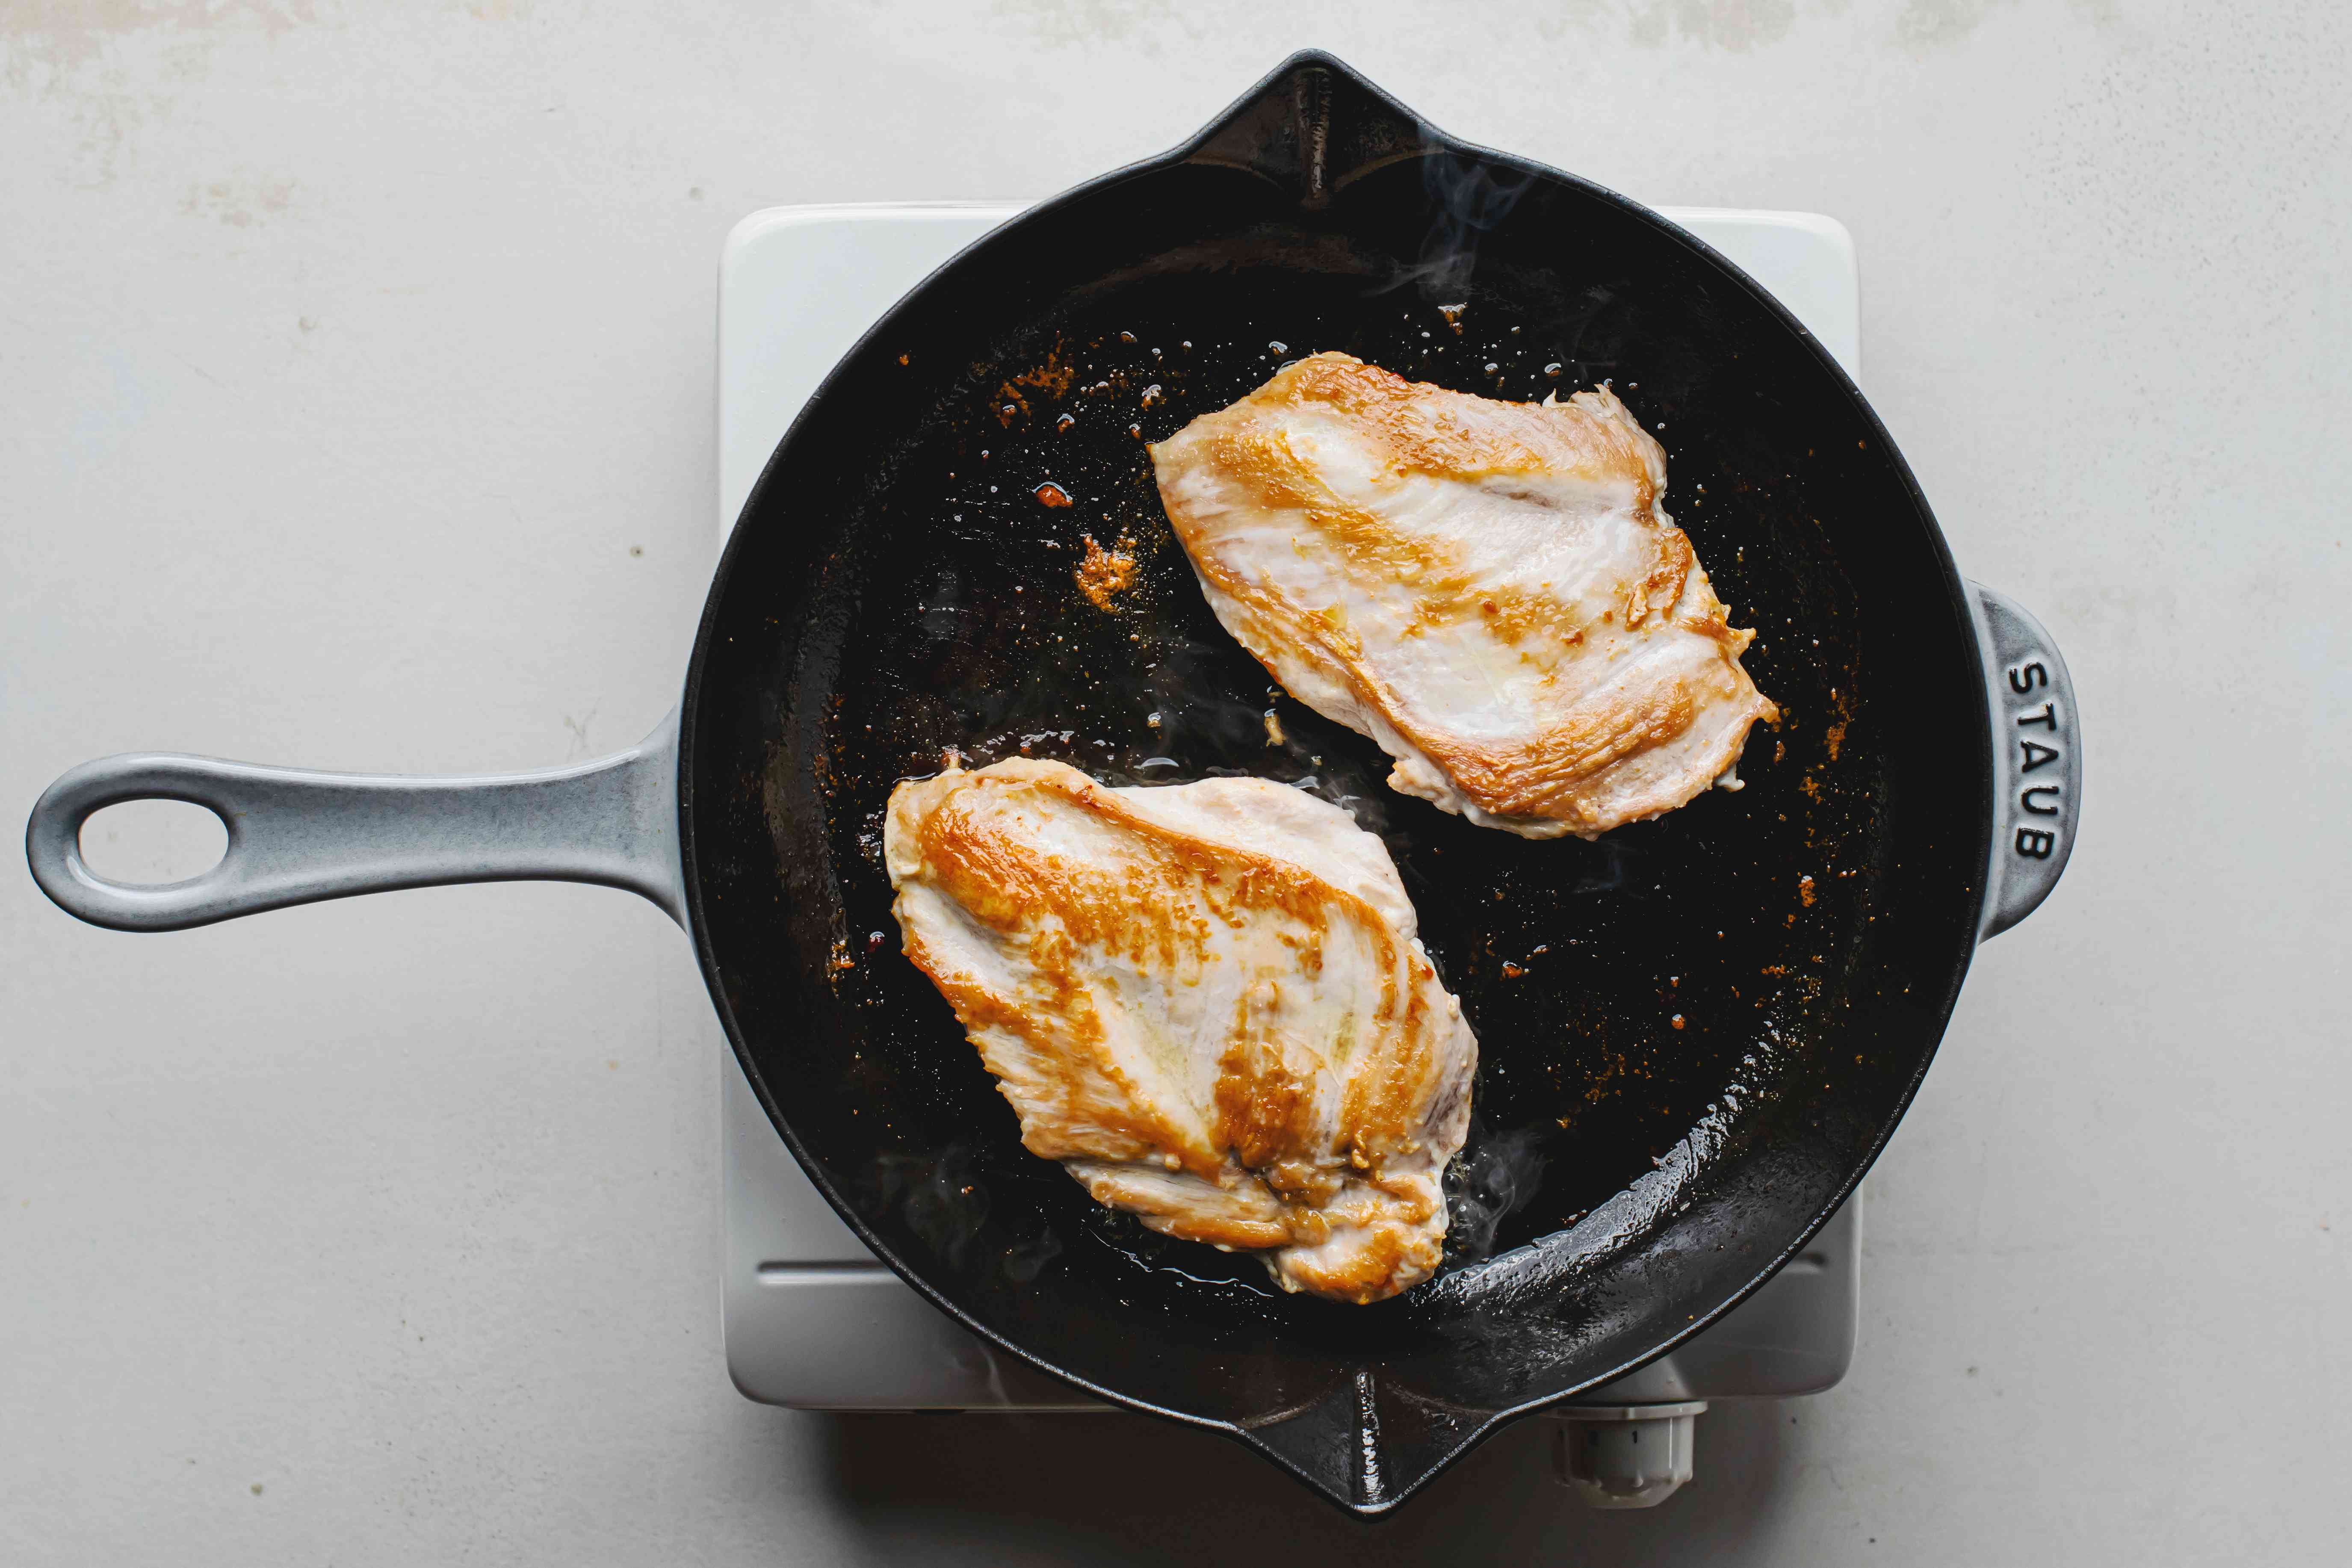 Pan-fried chicken in a cast-iron skillet